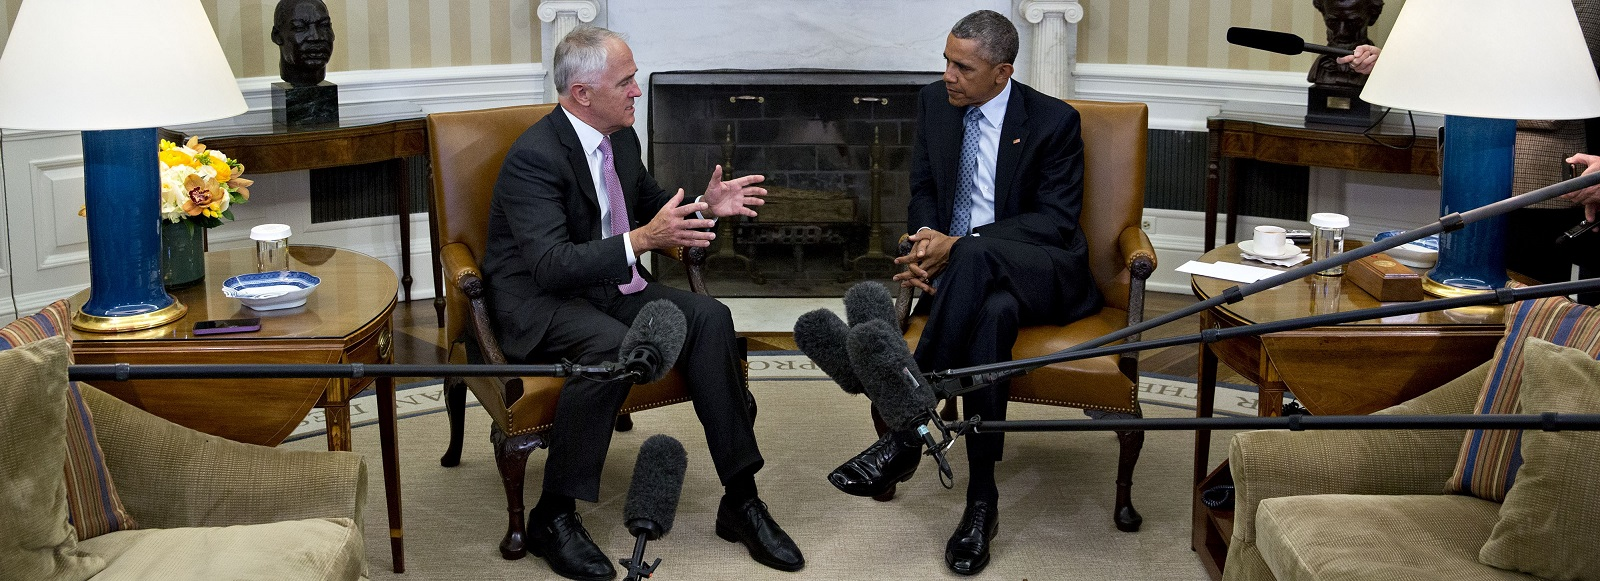 Obama-Turnbull Oval Office meeting January 2016 (Photo Andrew Harrer/Bloomberg via Getty Images)